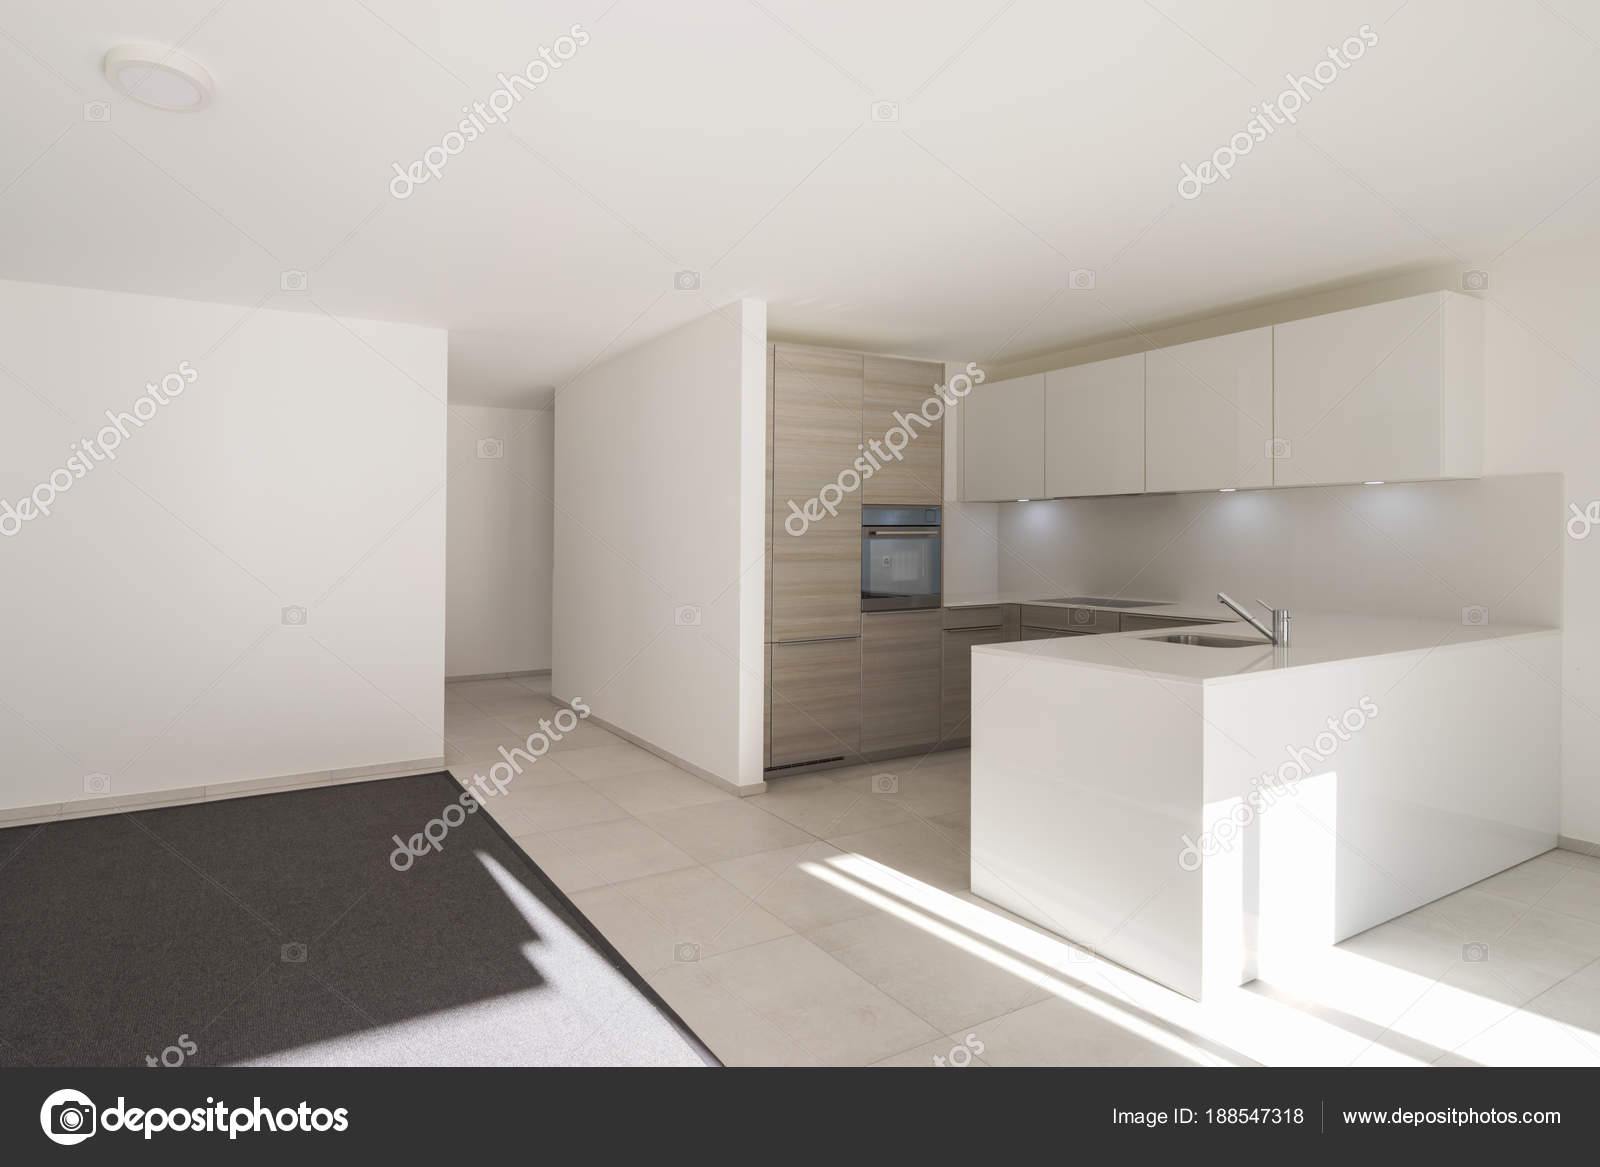 Modern Open Space With Living Room And Kitchen Stock Photo C Zveiger 188547318